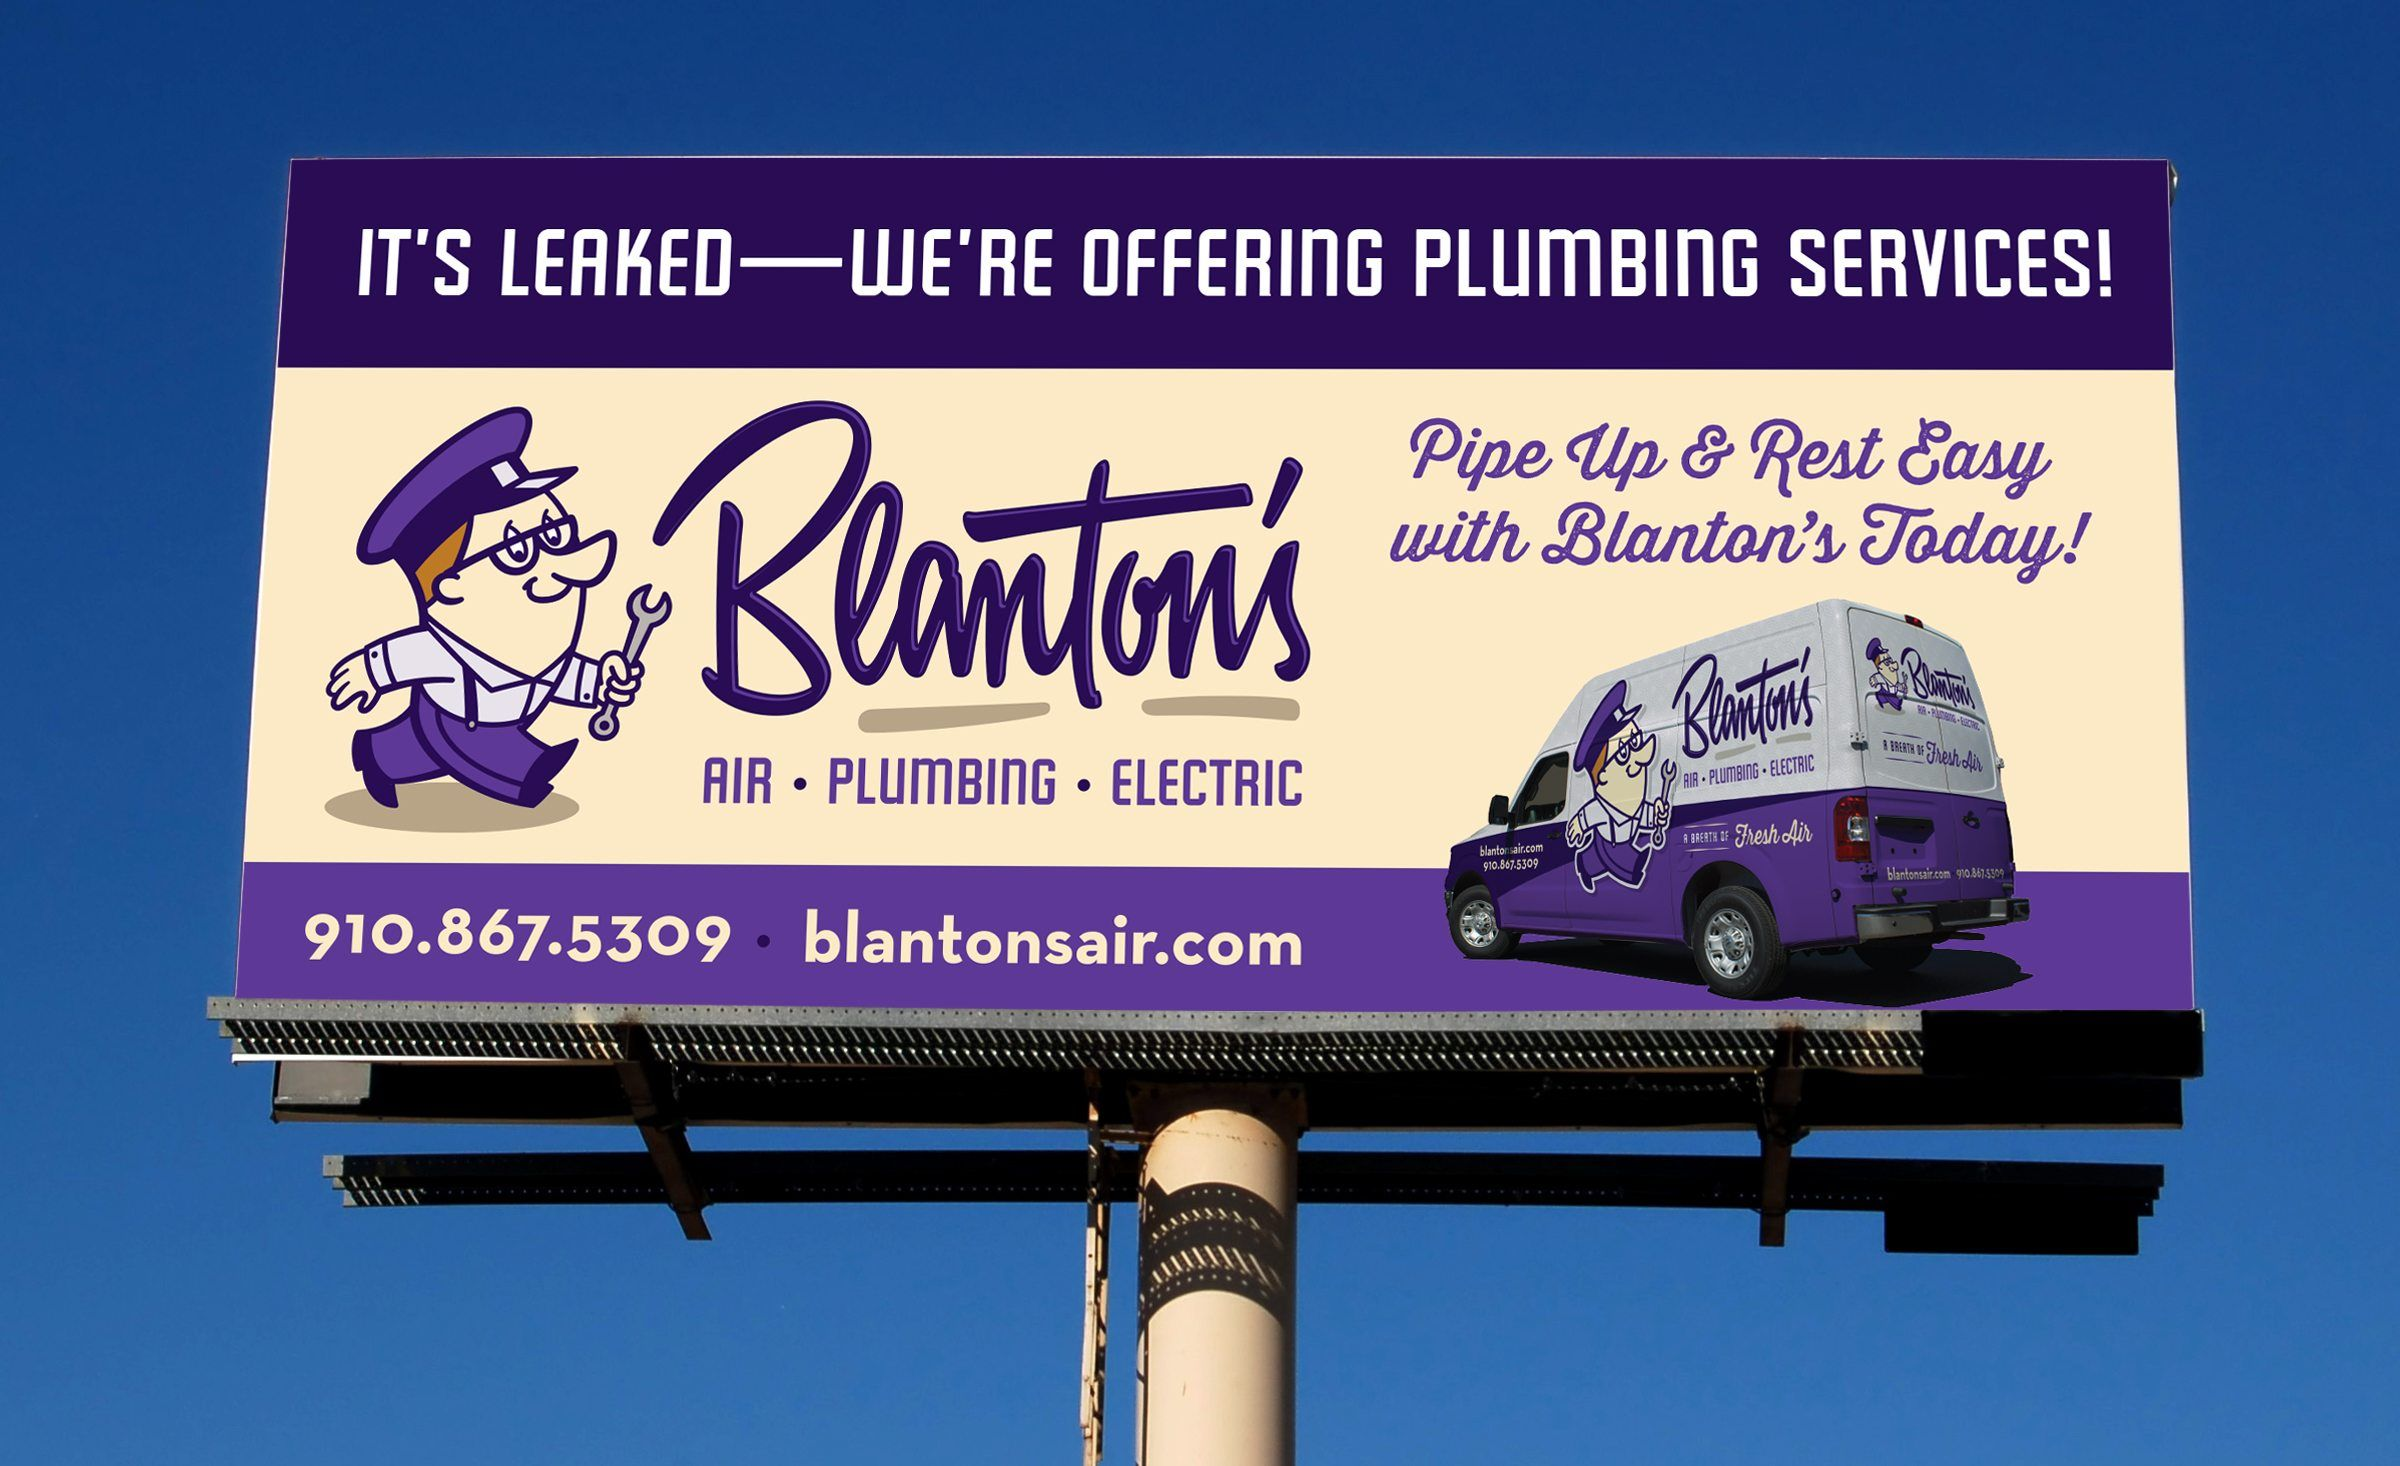 Billboard Design For This Hvac Plumbing Electrical Contractor In Fayetteville Nc Nj Advertising Agency Nj Plumbing Problems Plumbing Plumbing Emergency